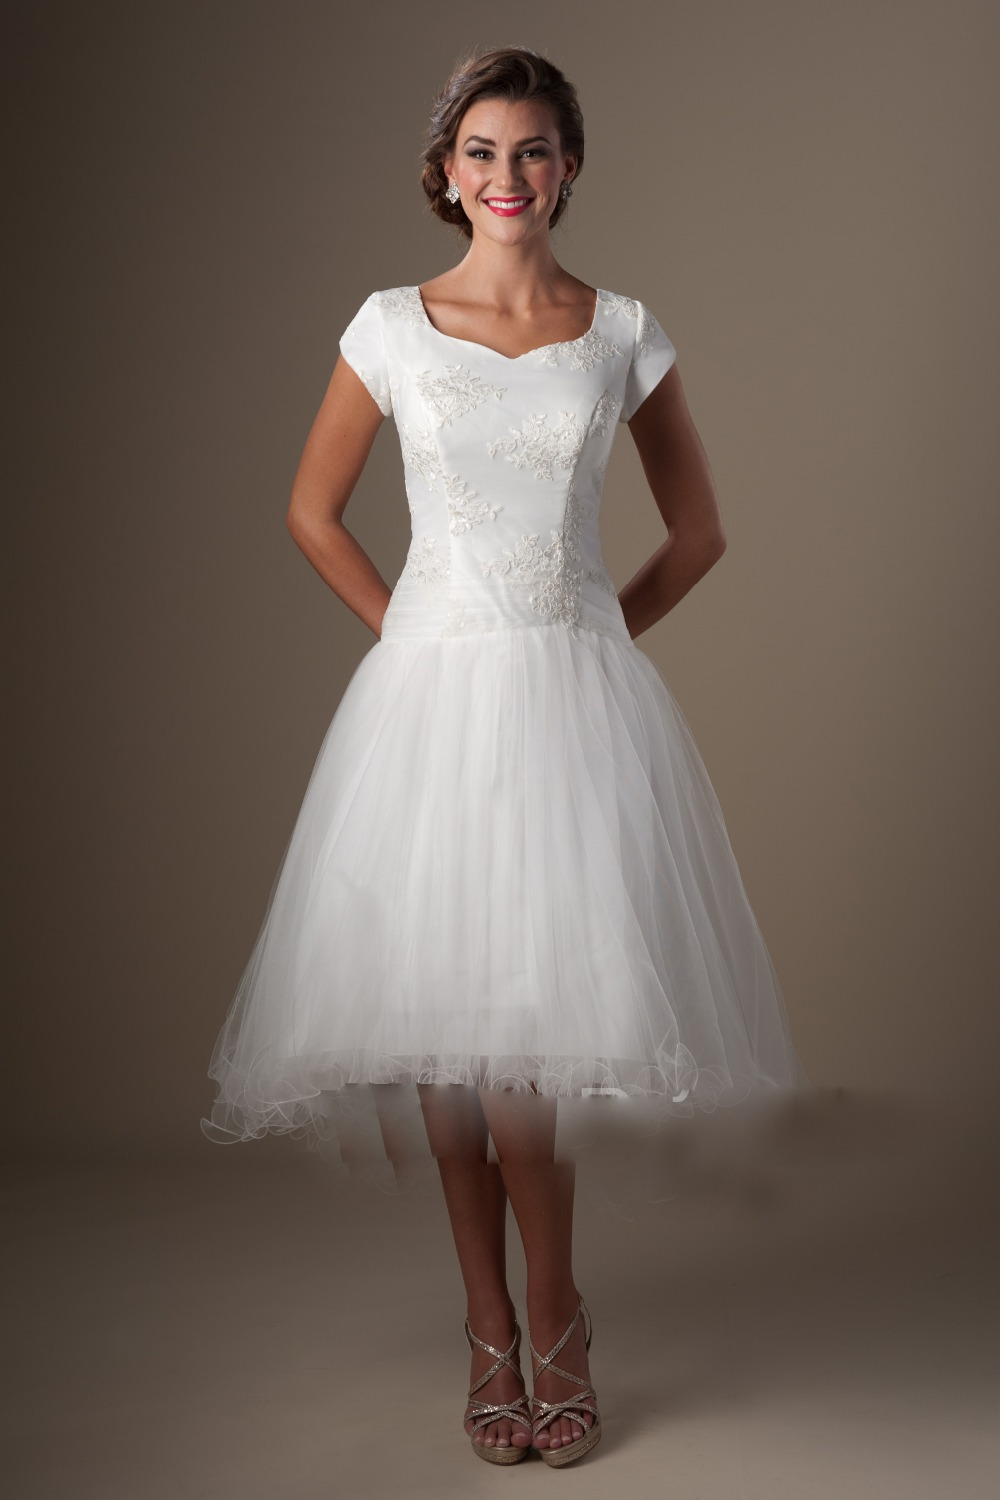 Cheap tea length wedding dresses online cheap wedding for Where to buy cheap wedding dresses online